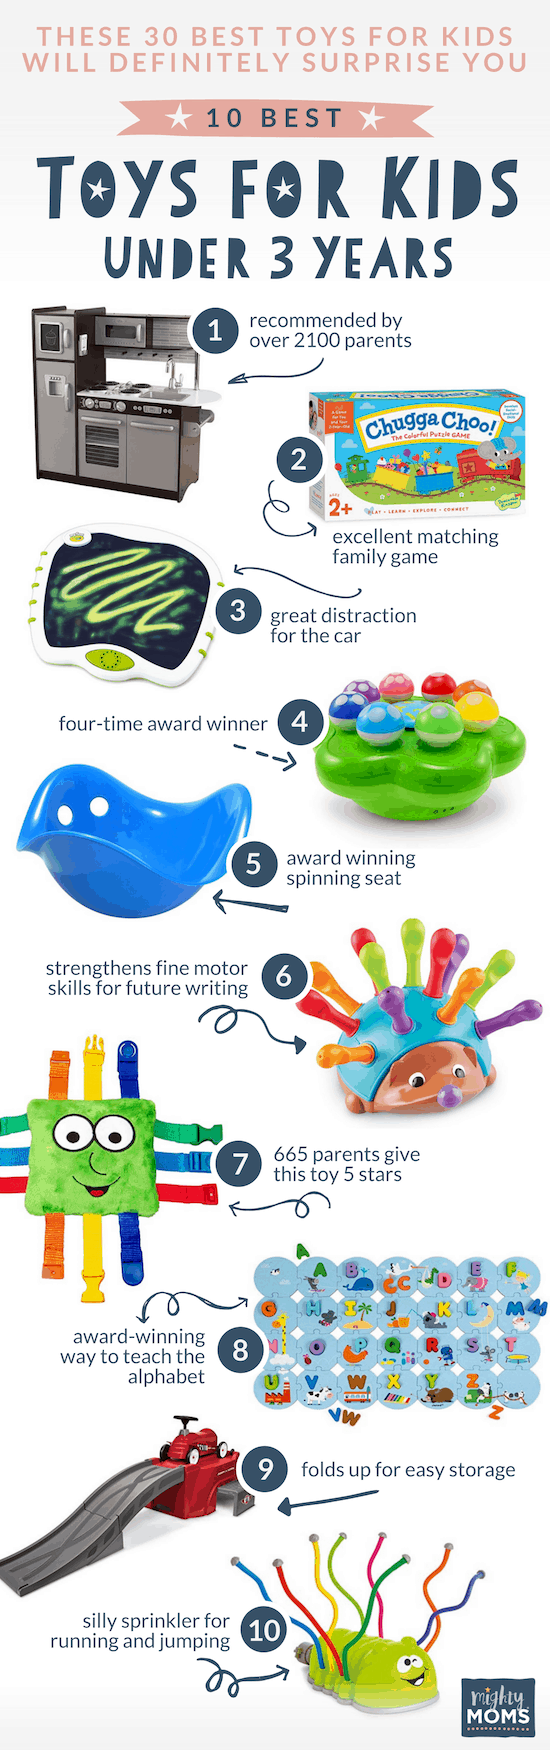 Best Toys for Kids Under 3 Years - MightyMoms.club